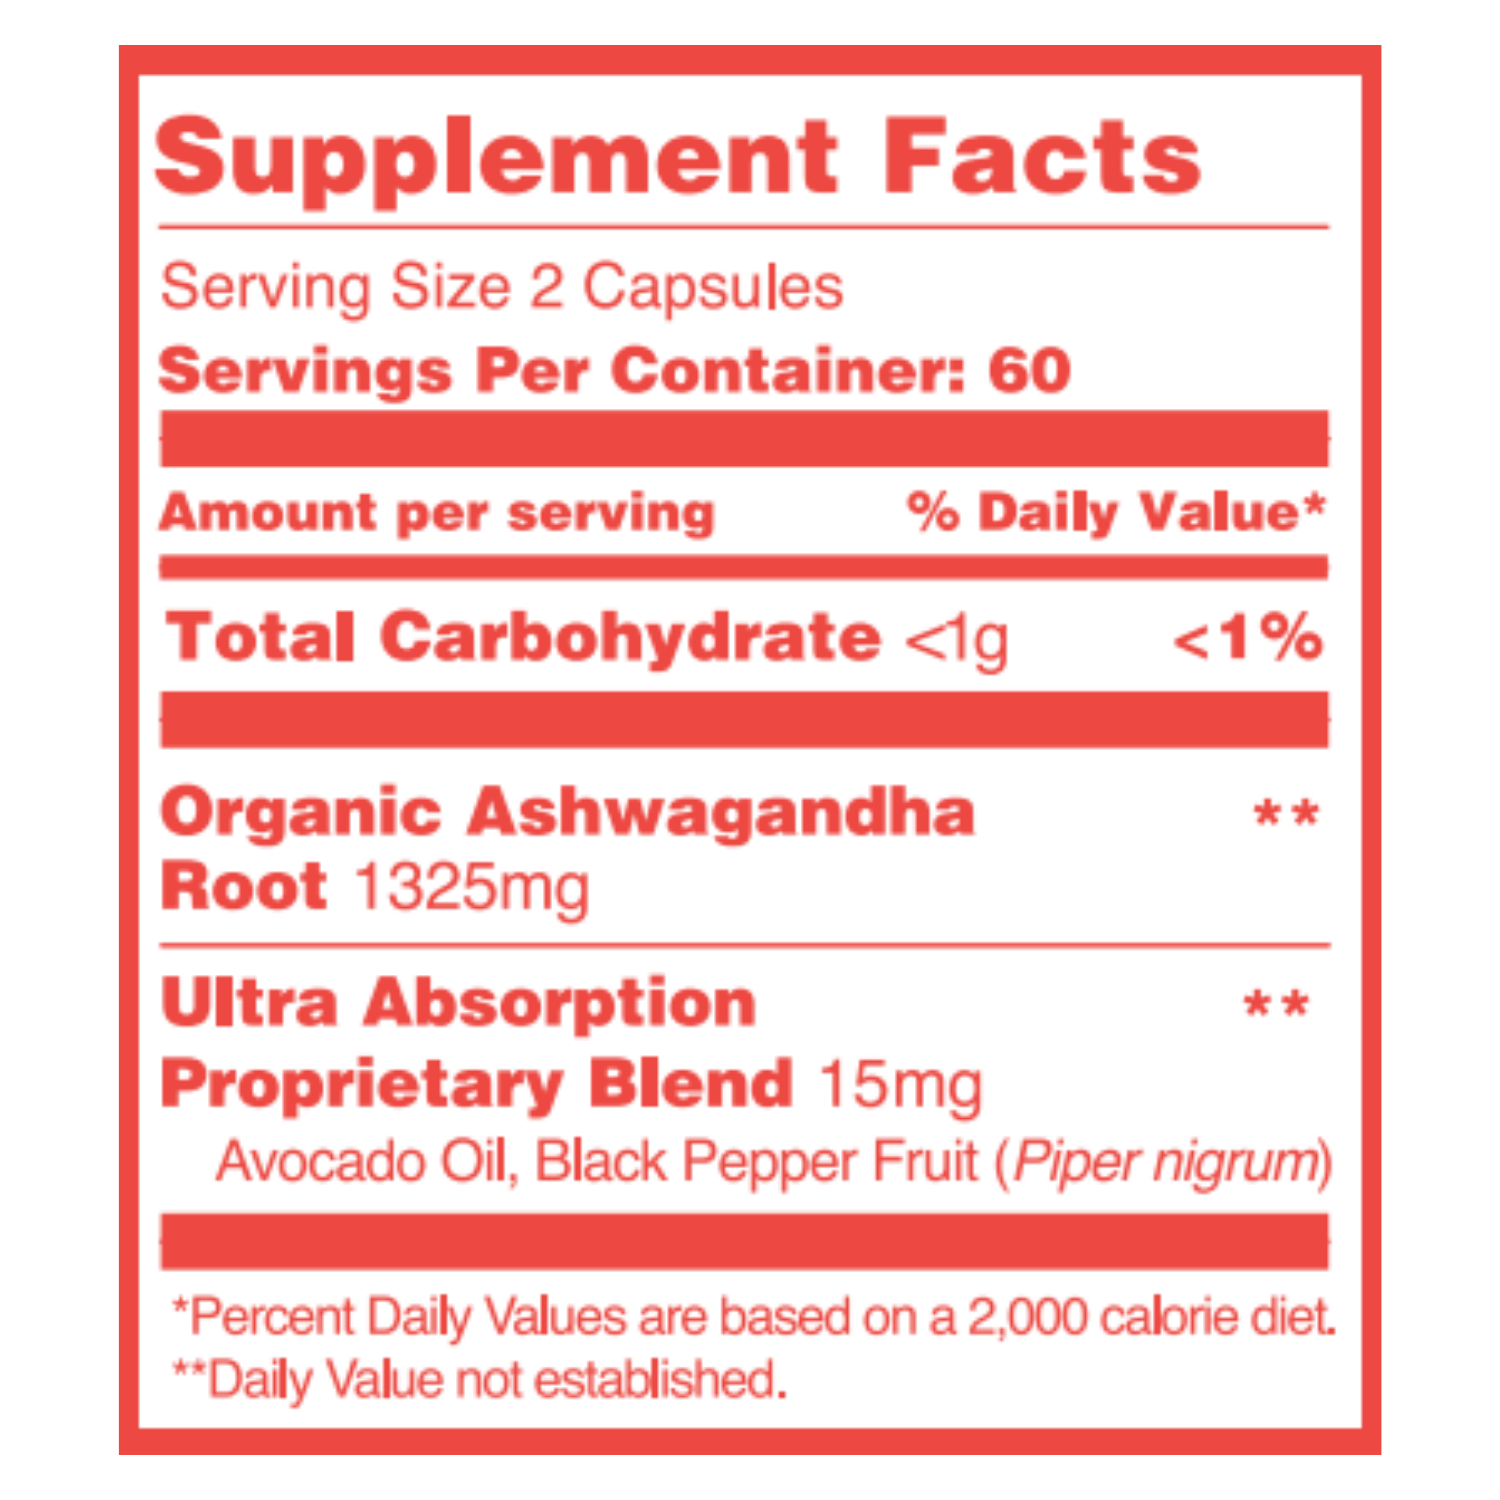 Premium Ashwagandha Supplement Facts